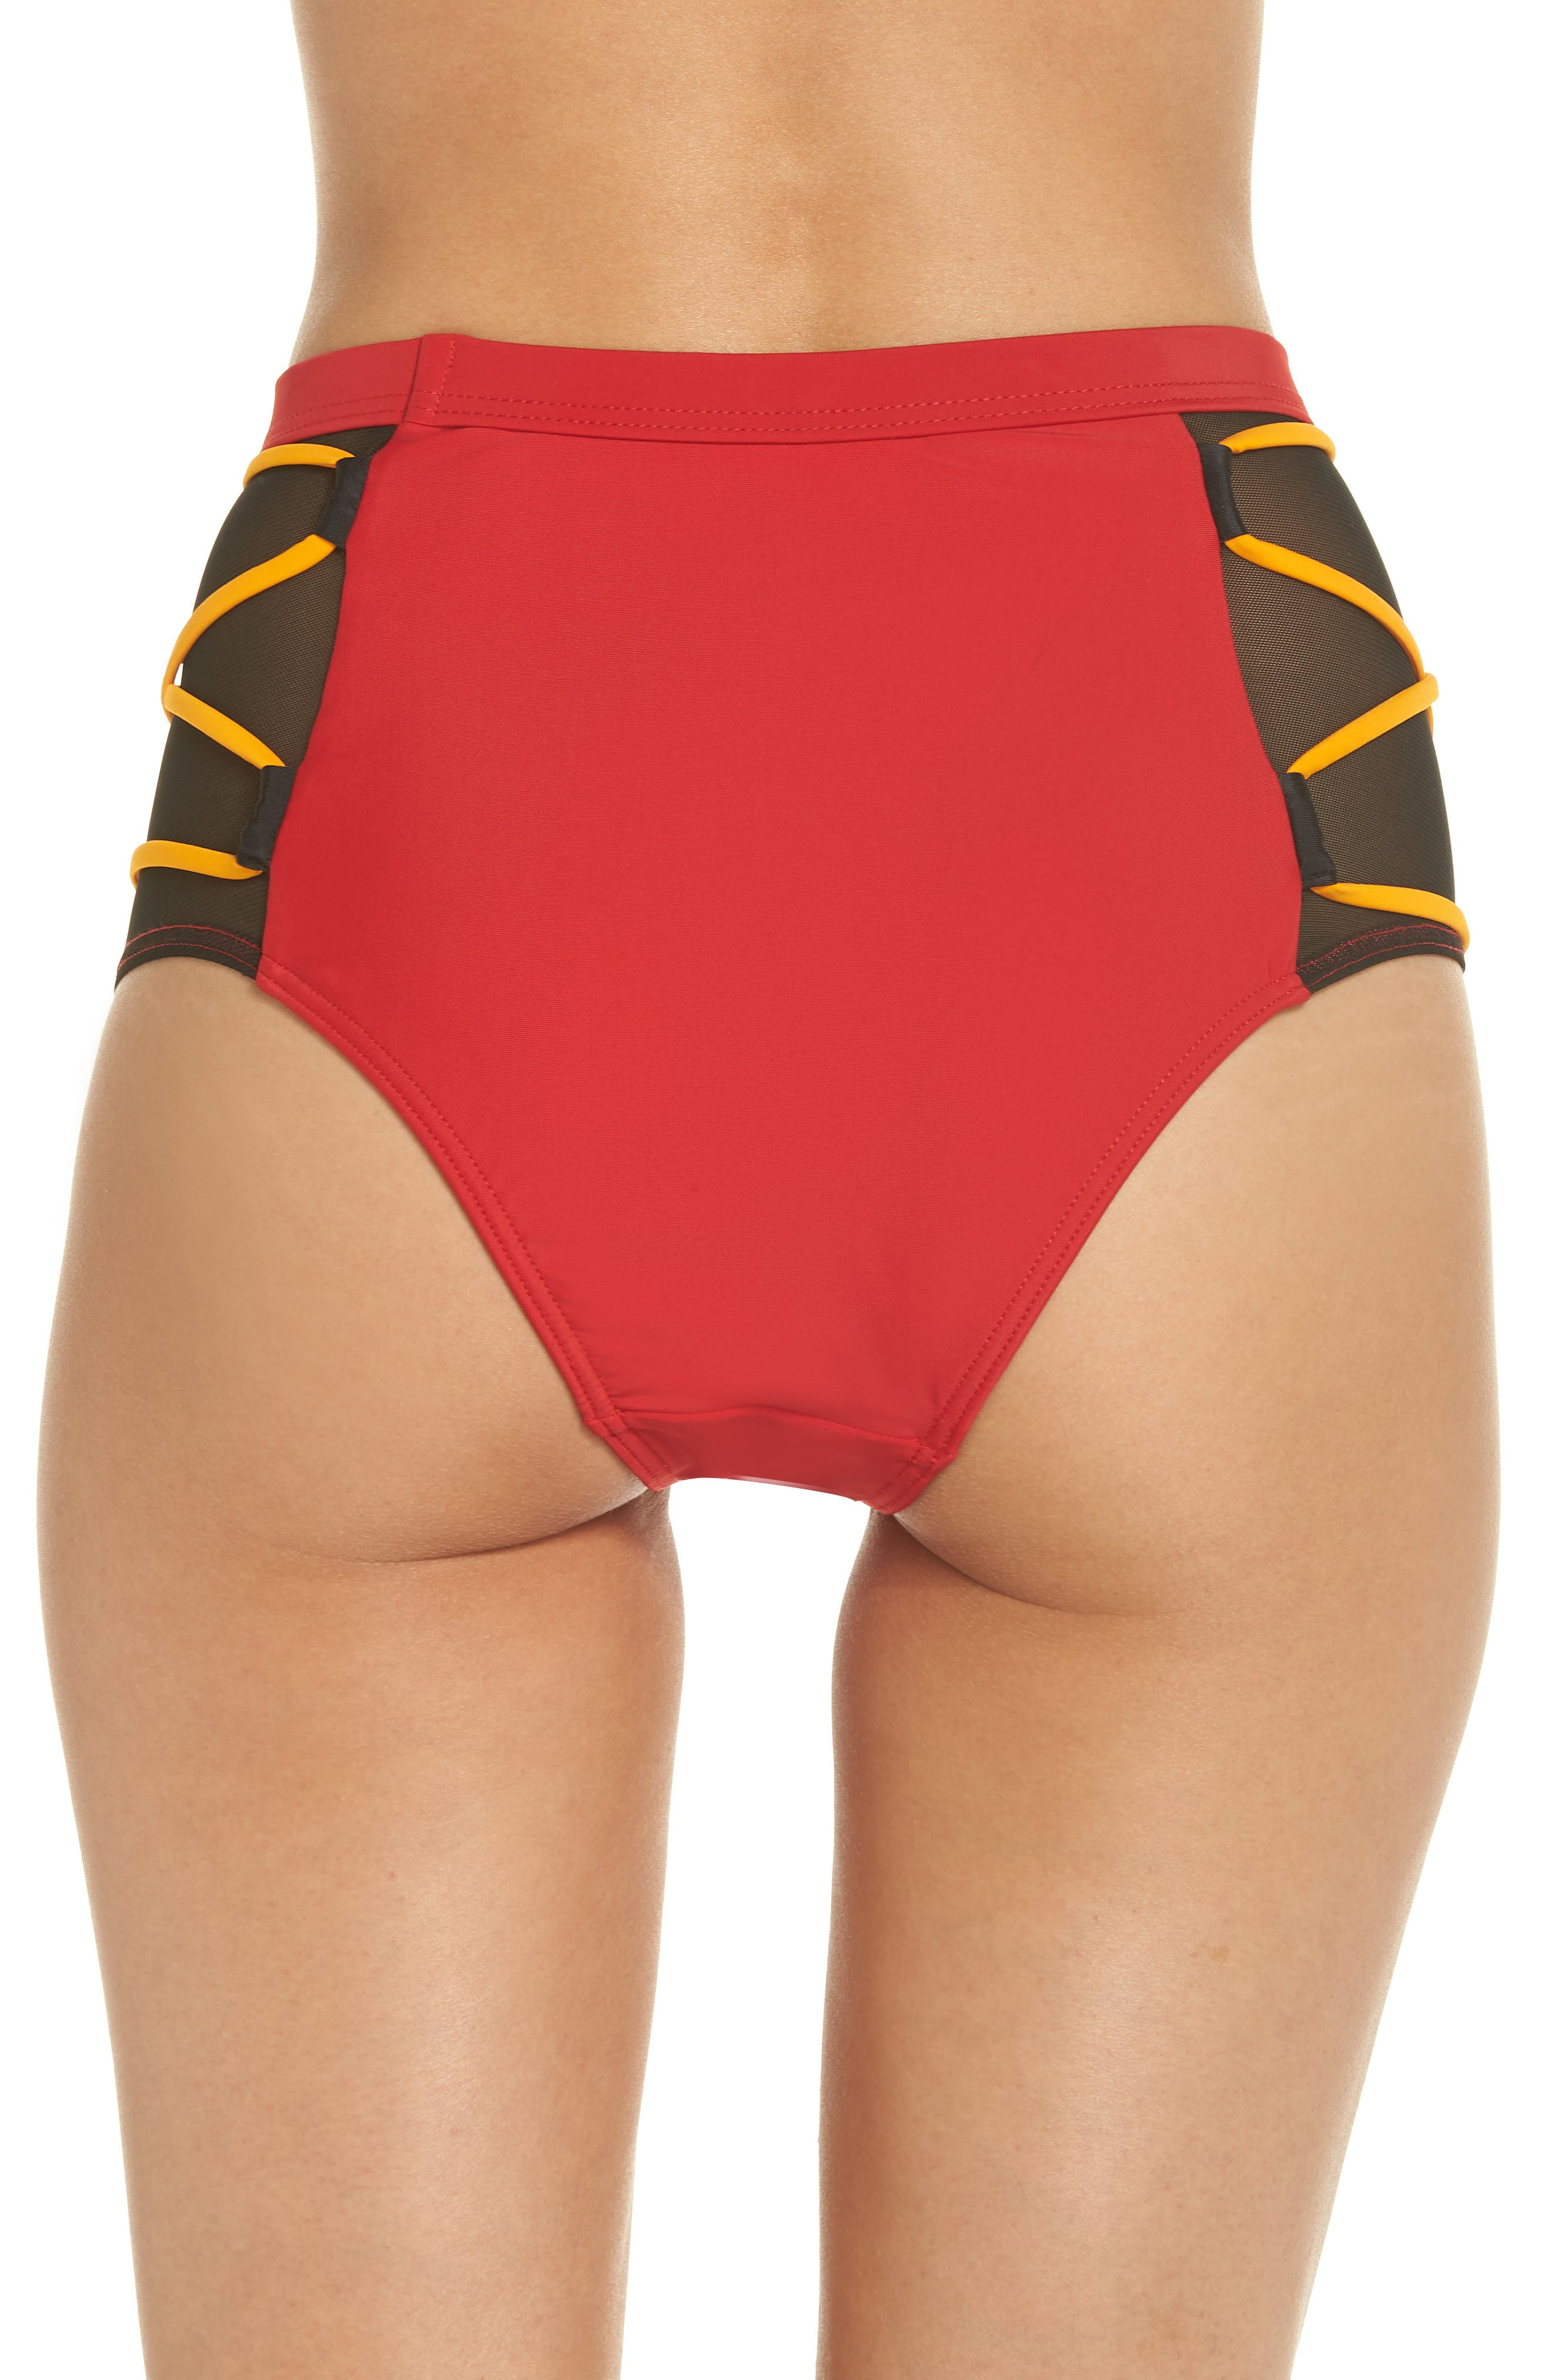 Launch Bikini Bottoms,                             Alternate thumbnail 2, color,